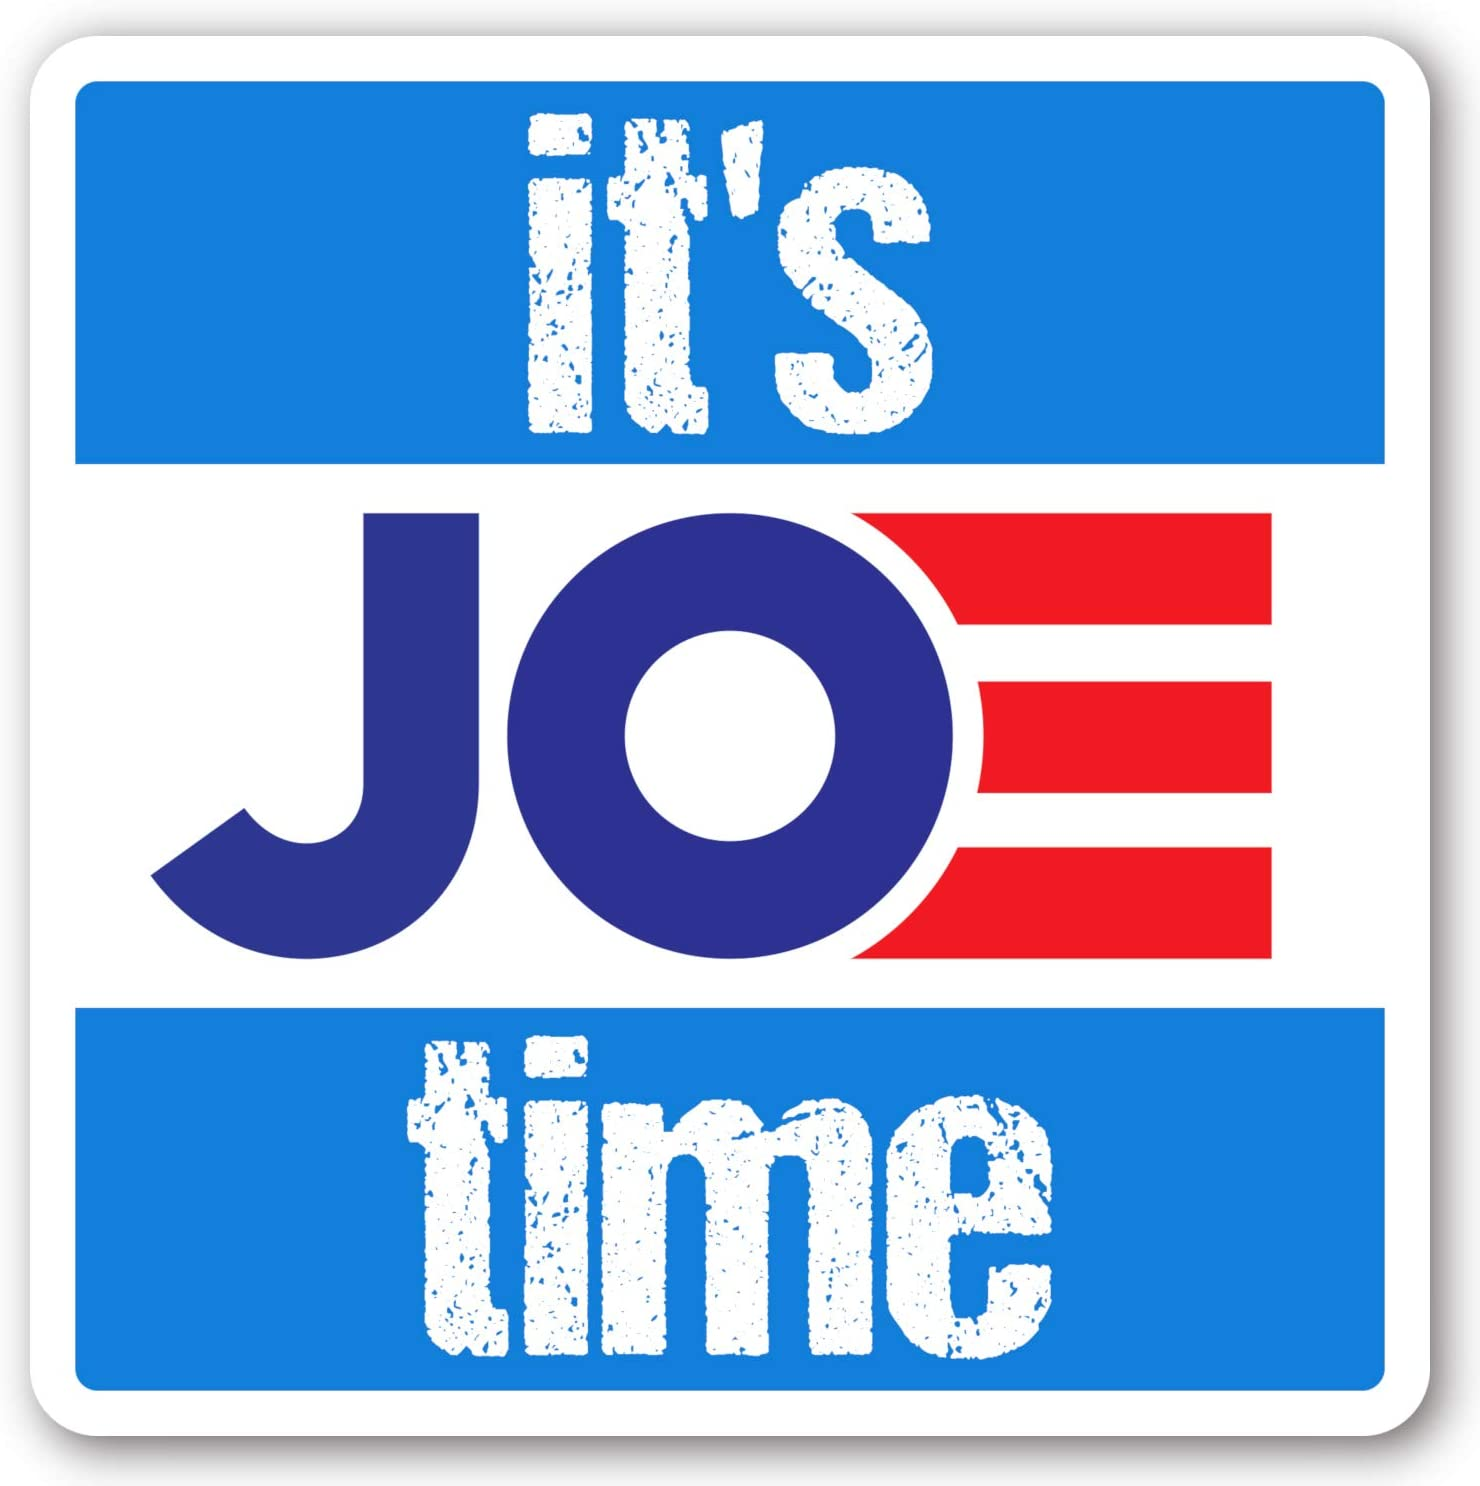 Crafted-Brand Joe Biden Sticker – Easily Removable Vinyl Decal with A Clever Anti-Trump Twist (3 X 3 Inch)